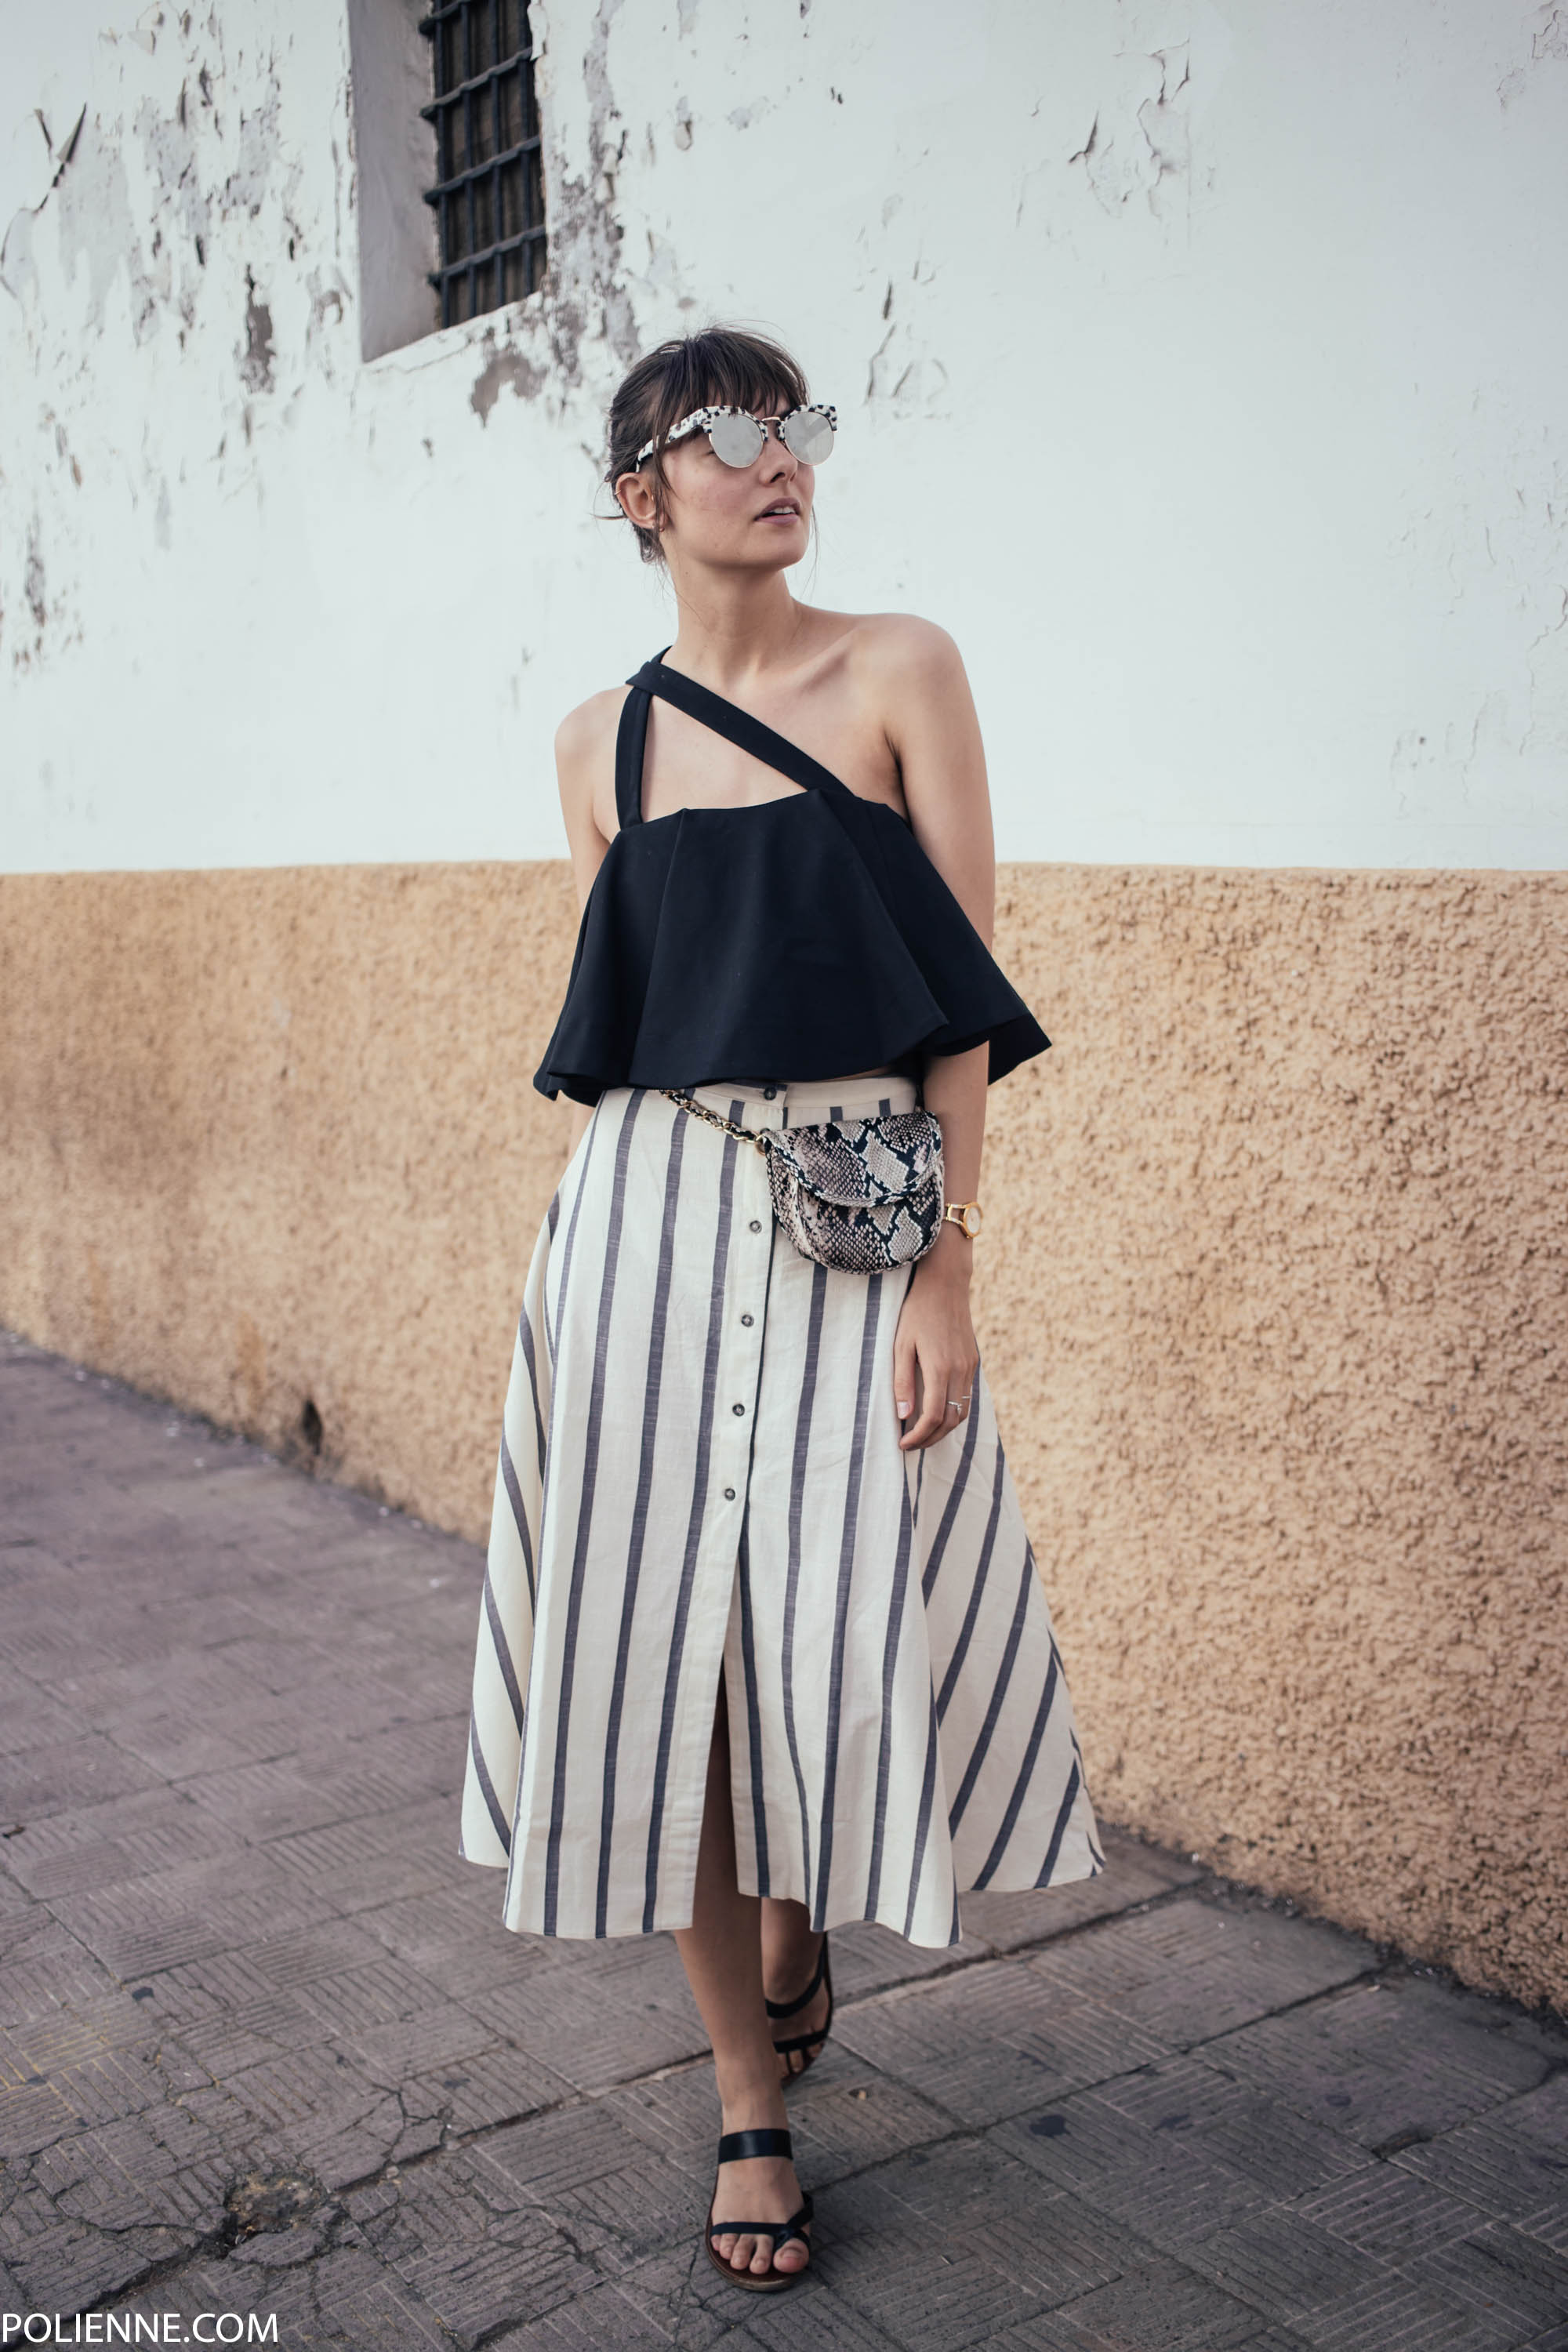 Seville by night & an ASOS update - POLIENNE